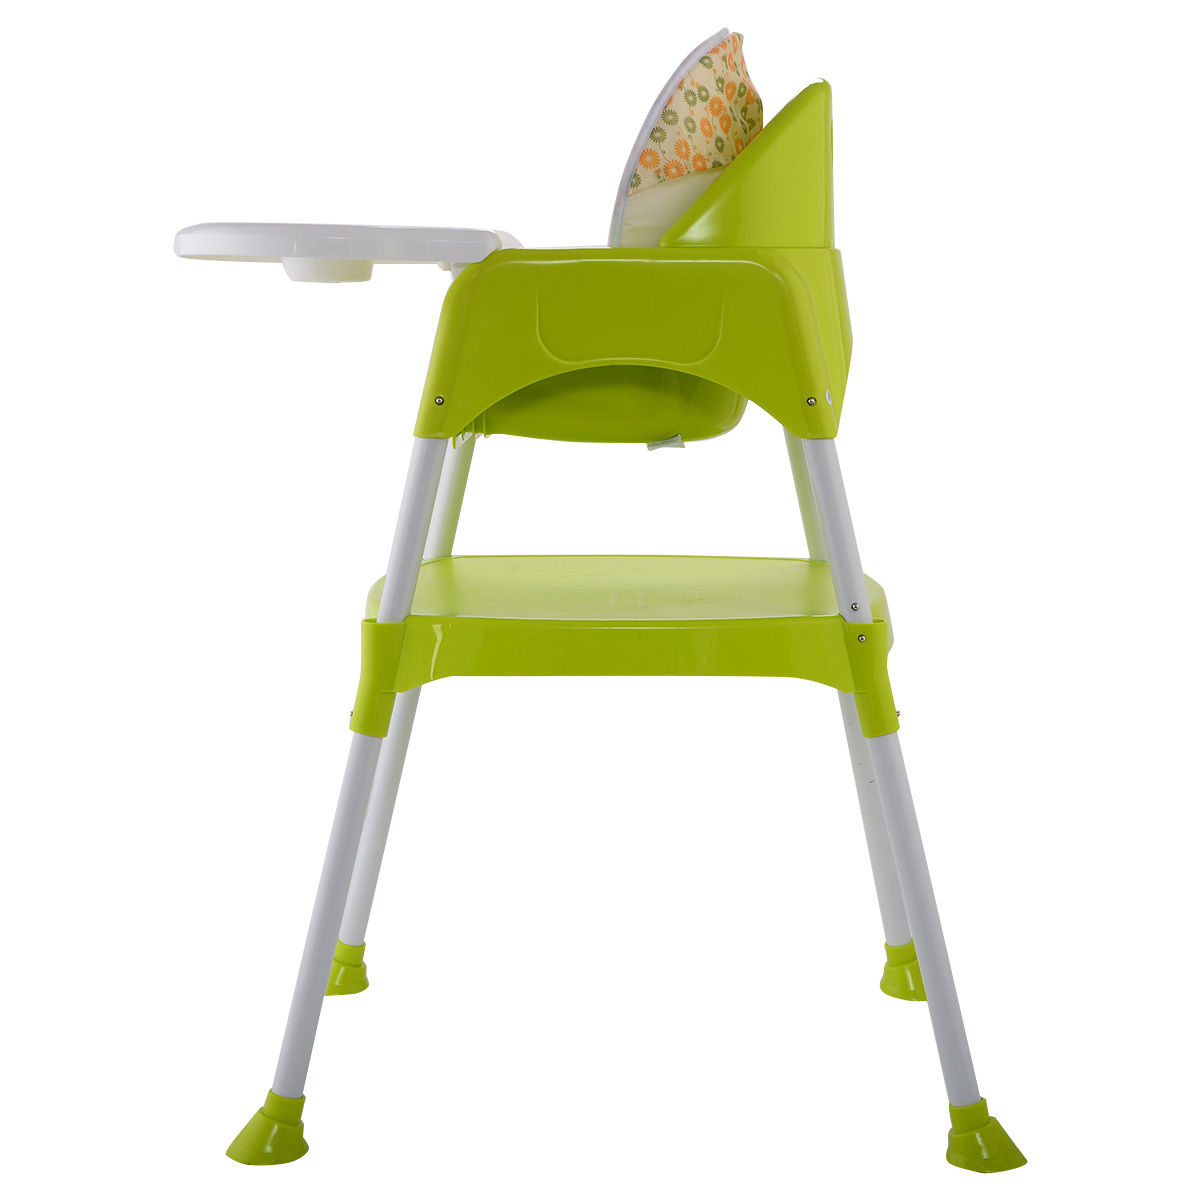 green high chair correct posture costway 3 in 1 baby convertible table seat booster toddler feeding highchair walmart com